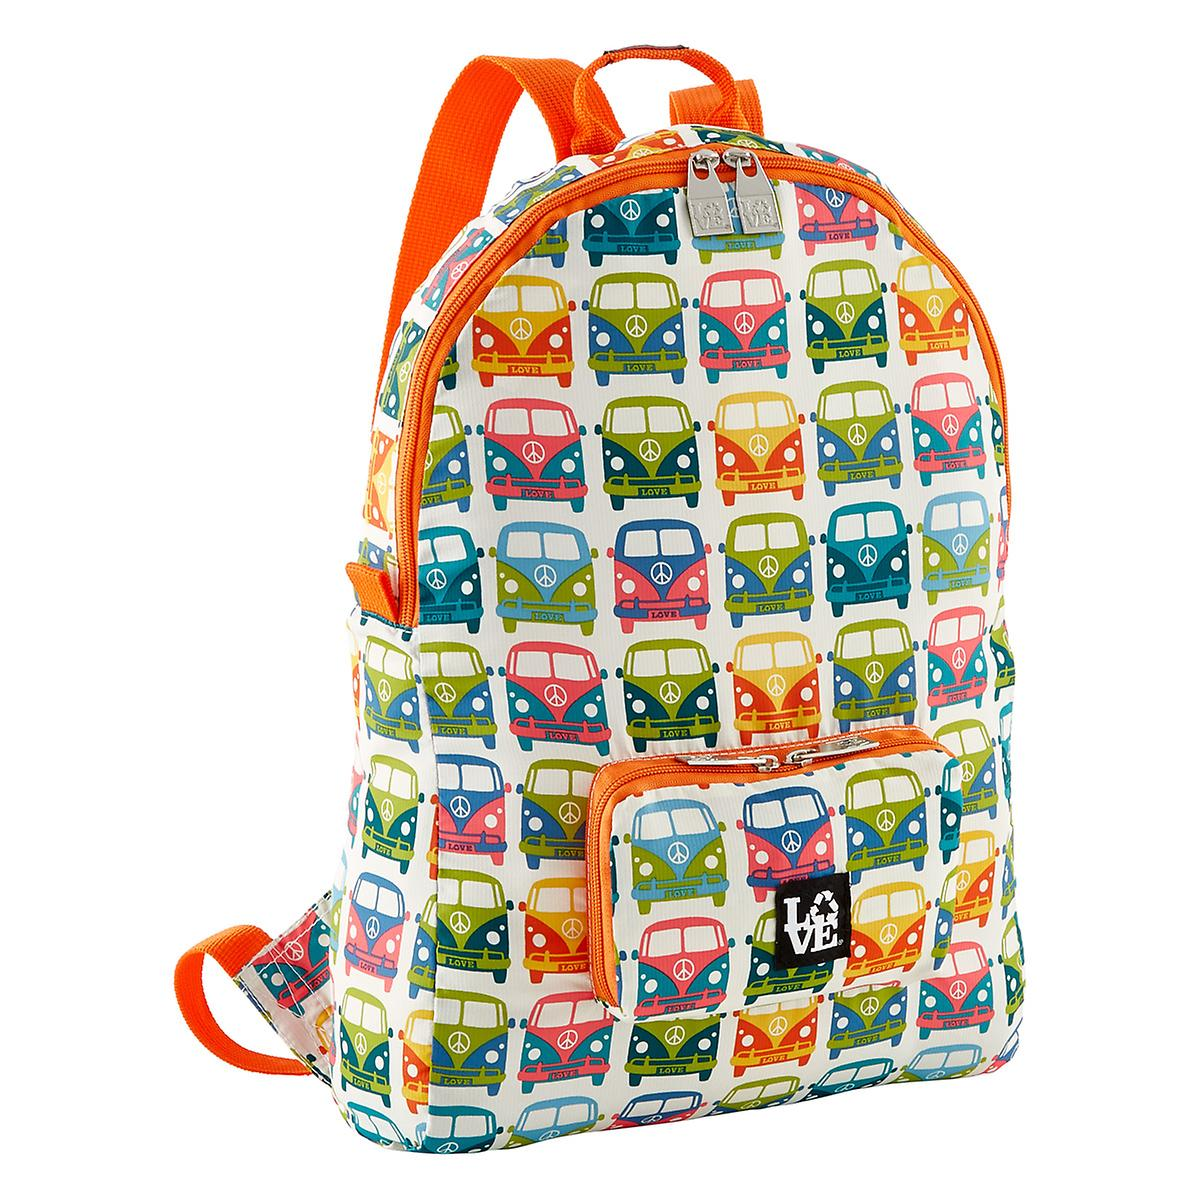 STASH BACKPACK - LOVE Bus